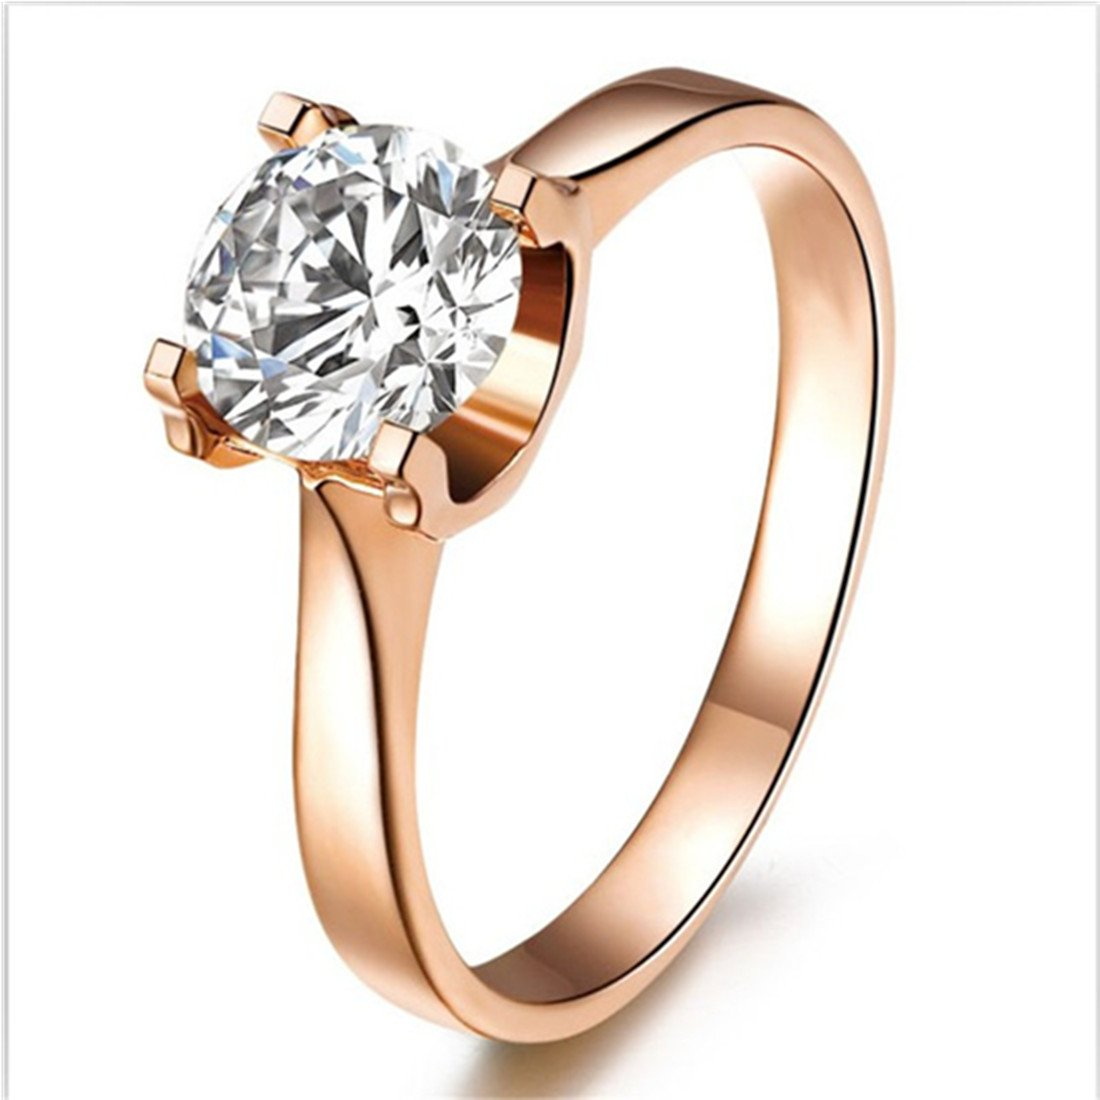 18K Rose Gold Plated 1CT Solitaire Engagement Ring NSCD Diamond Ring Women Sterling Silver Ring 3MJEWELRY SRMJZ0118